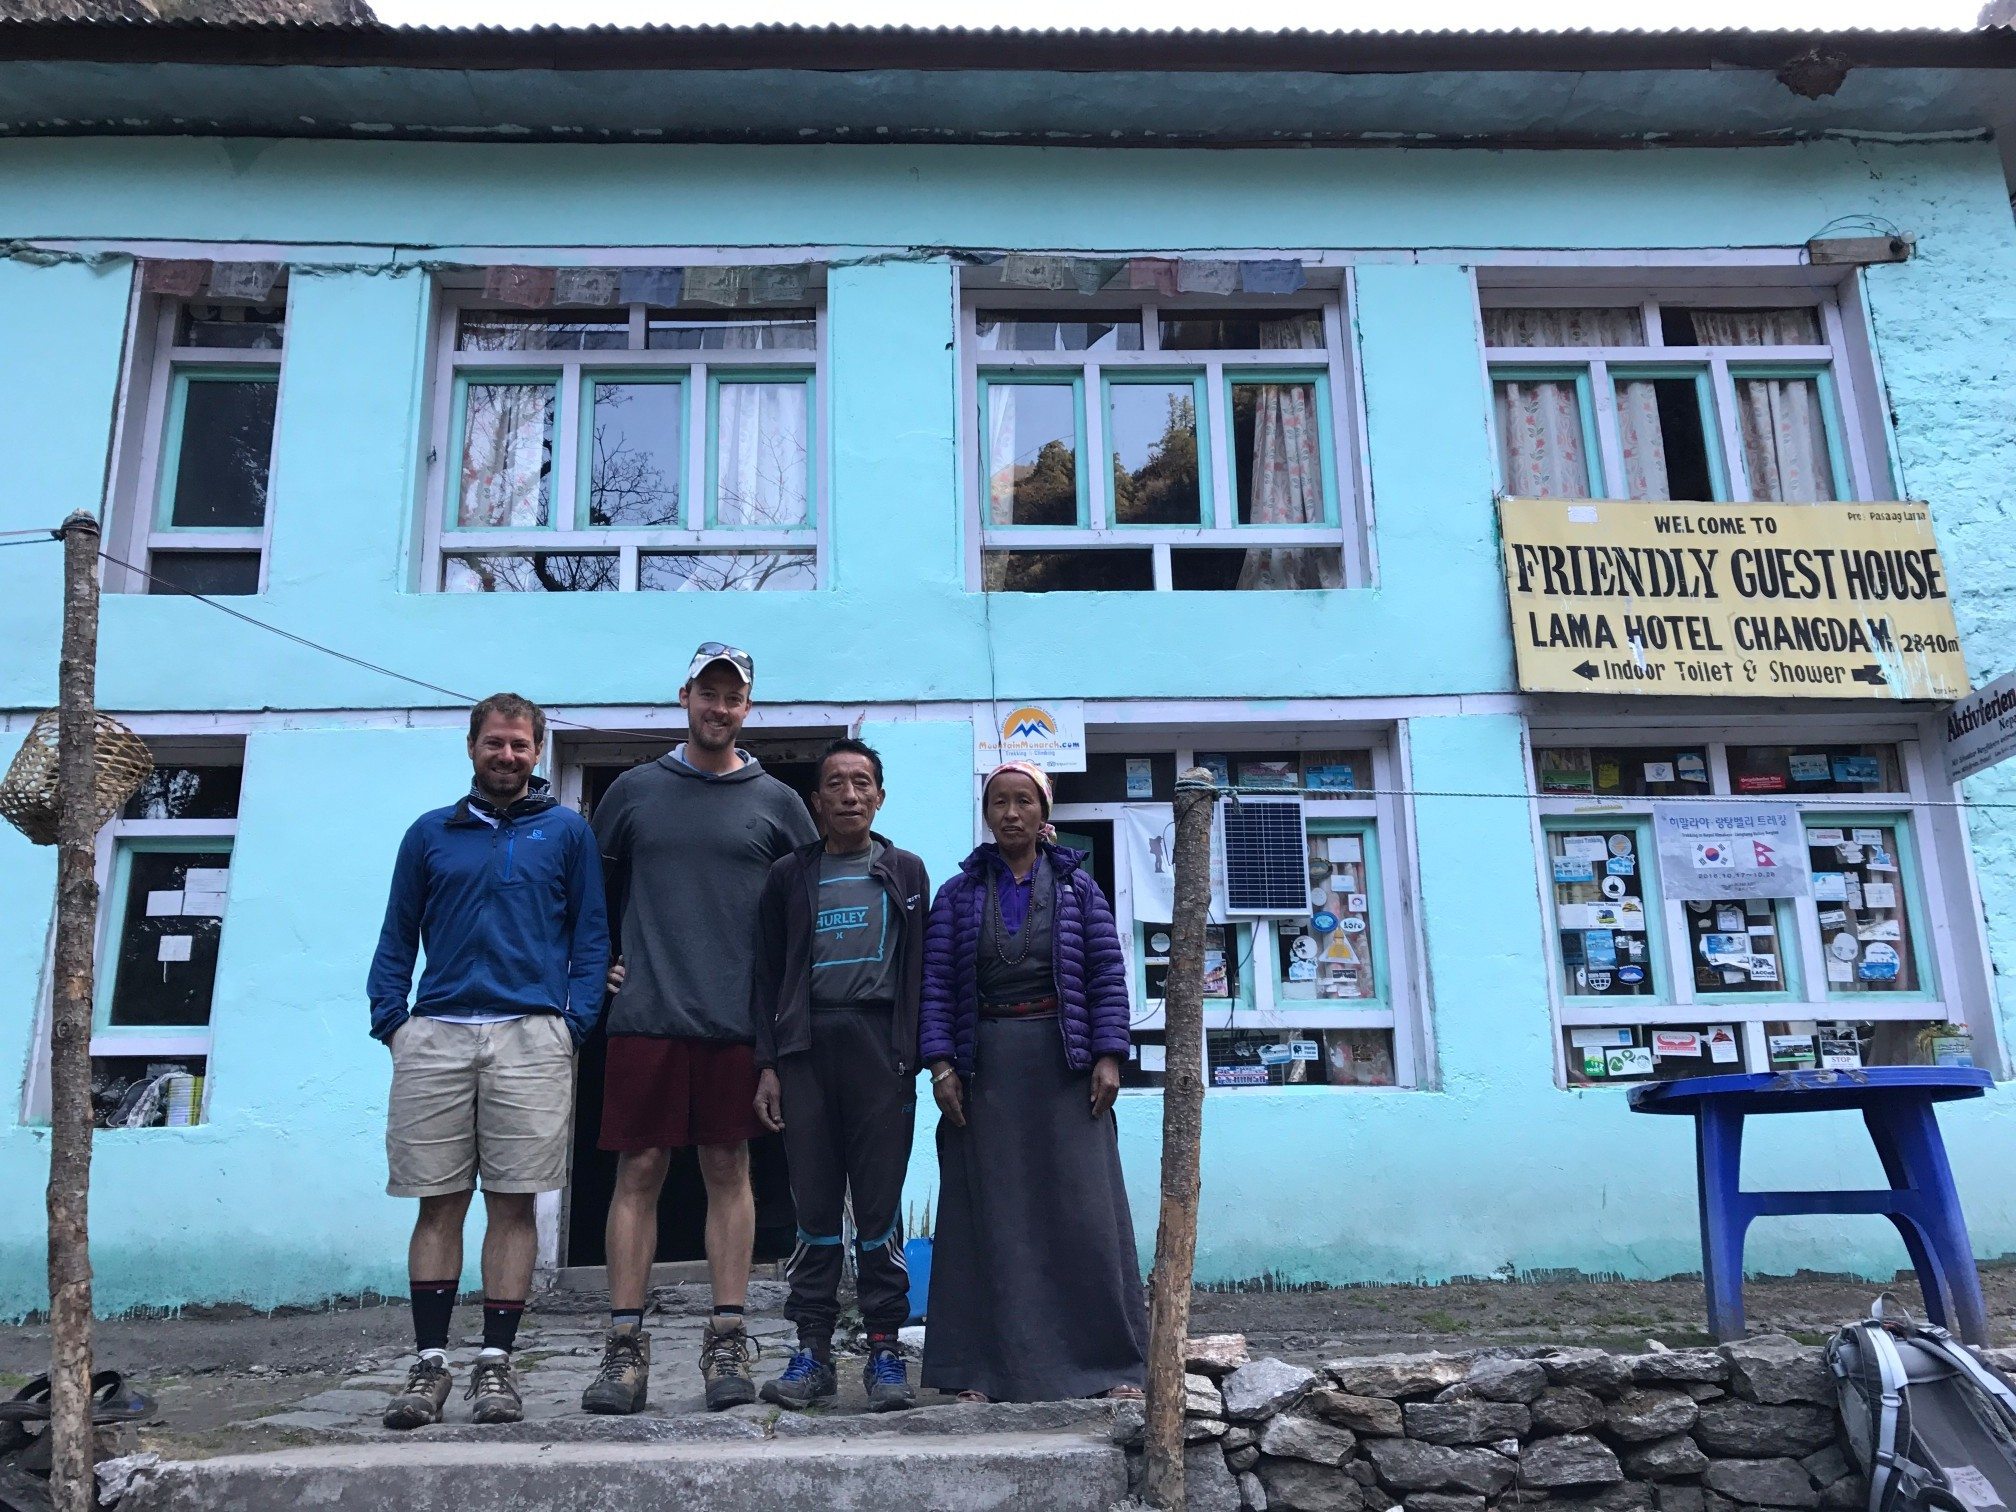 Kevin and I with Friendly Guest House owners